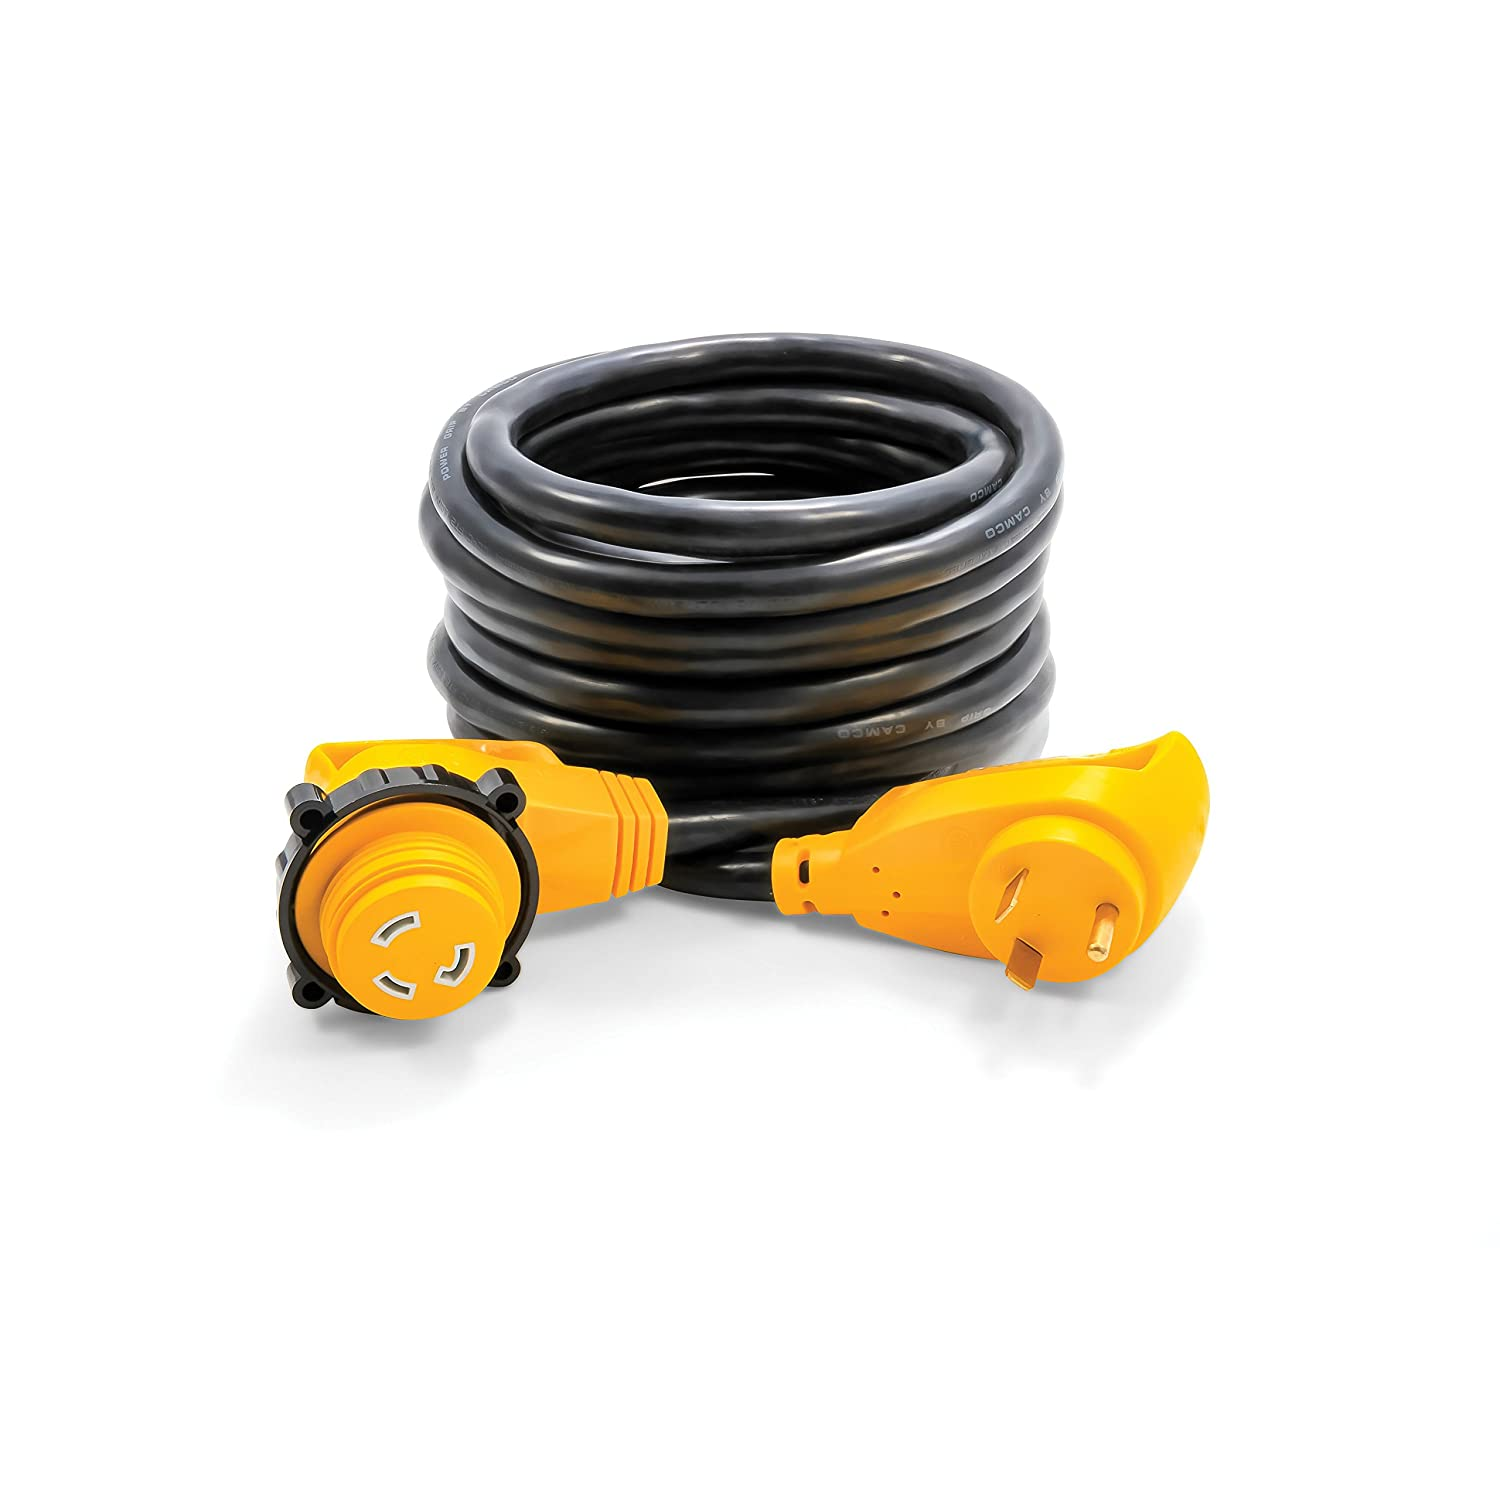 Camco 55524 30 Amp Power Grip Extension Cord with 90M/90F Locking Adapter - 25'